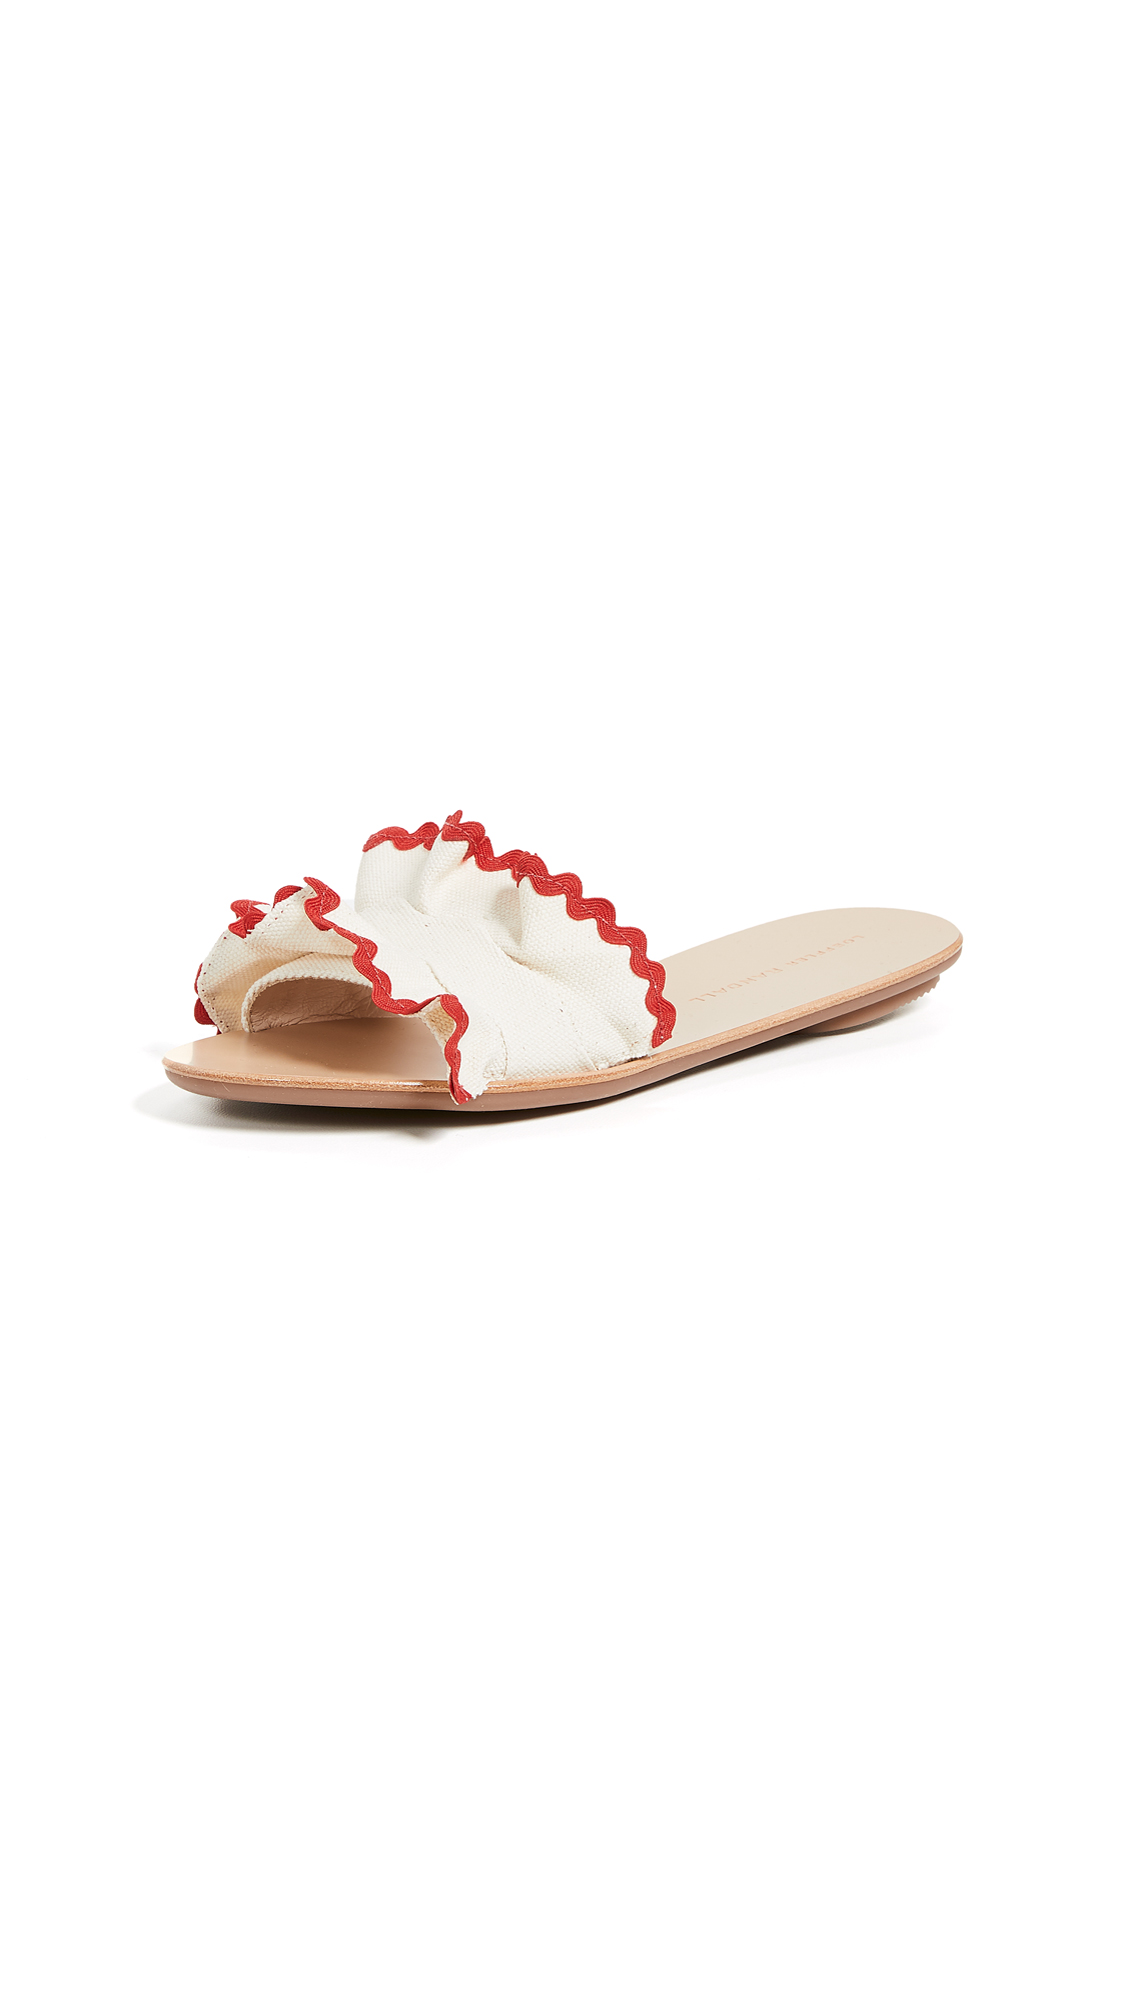 Loeffler Randall Birdie Ruffle Slides - Natural/Red